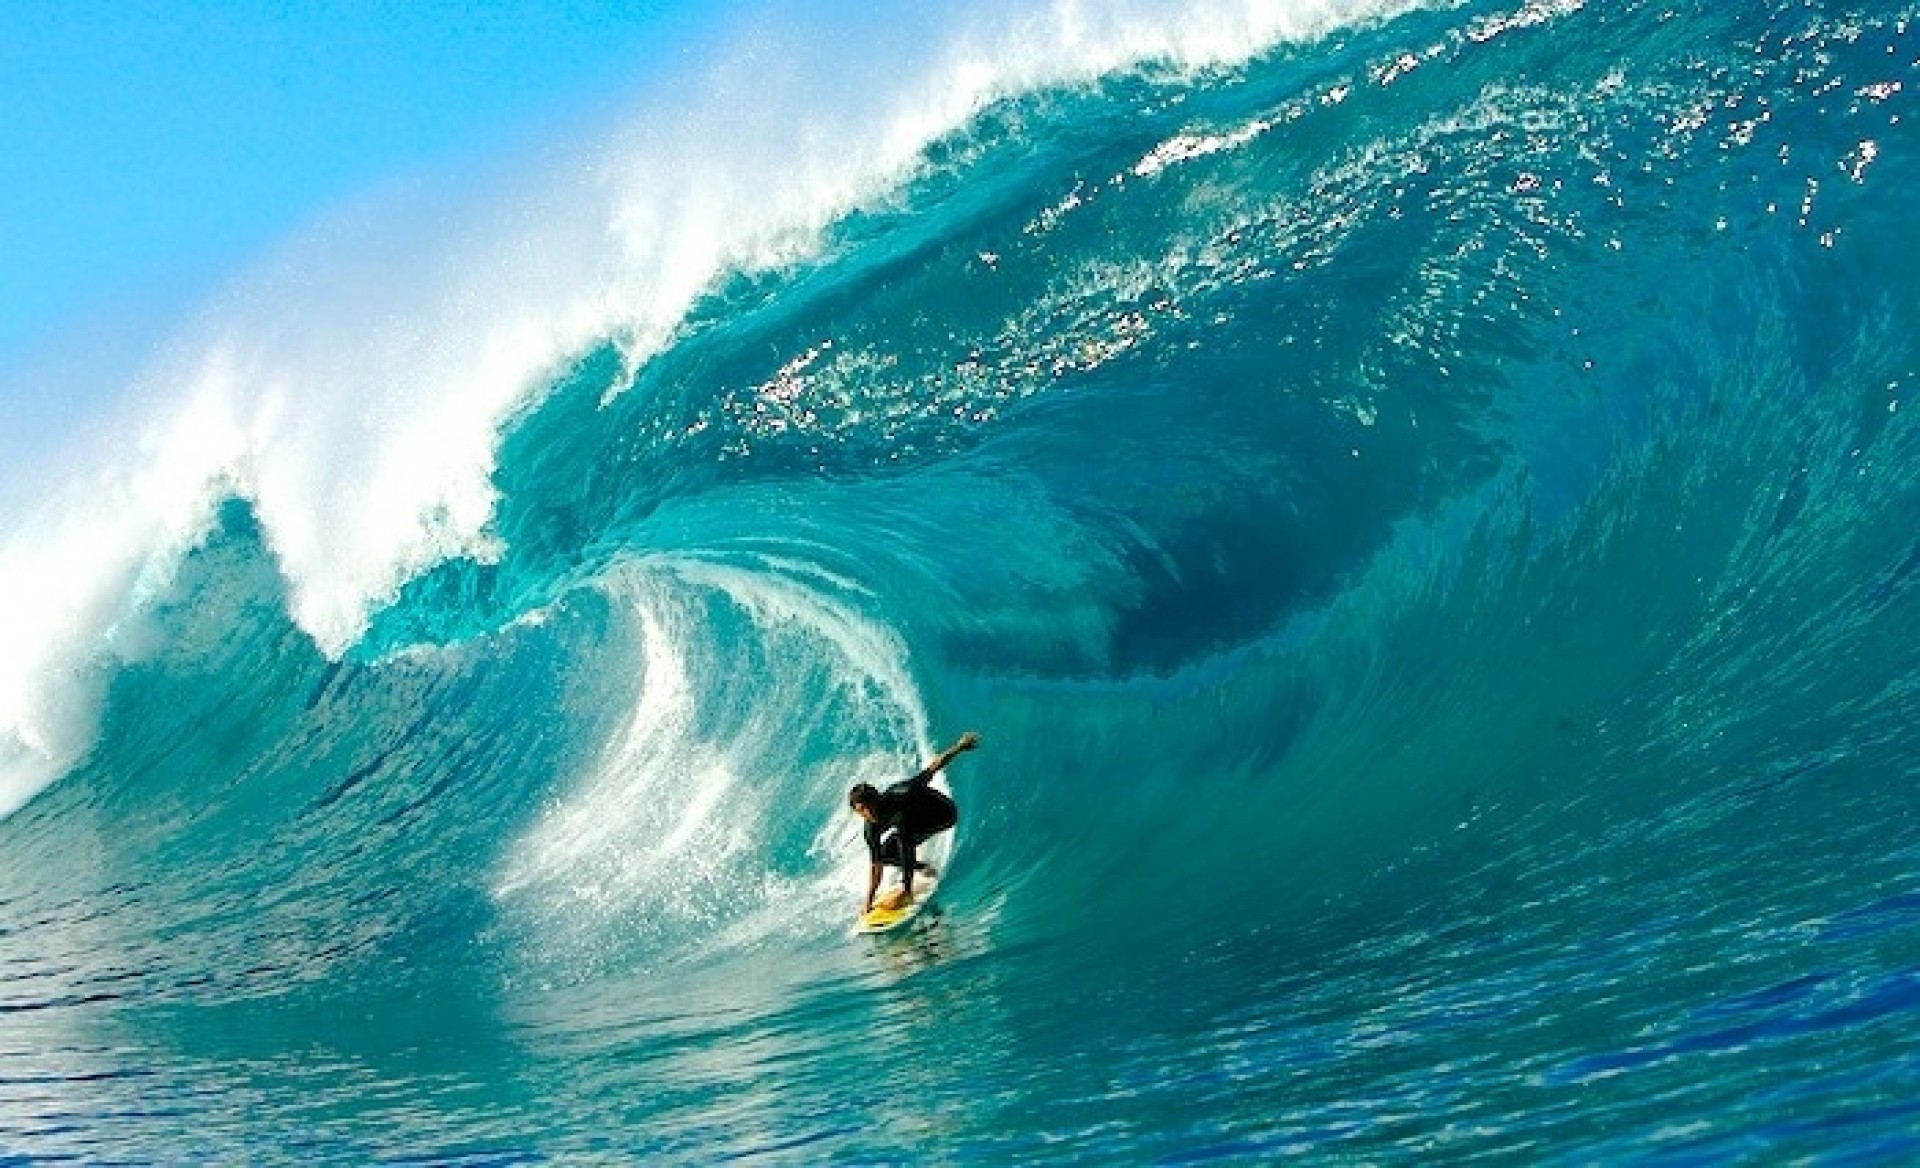 Mickey Smith's photo of Margaret River